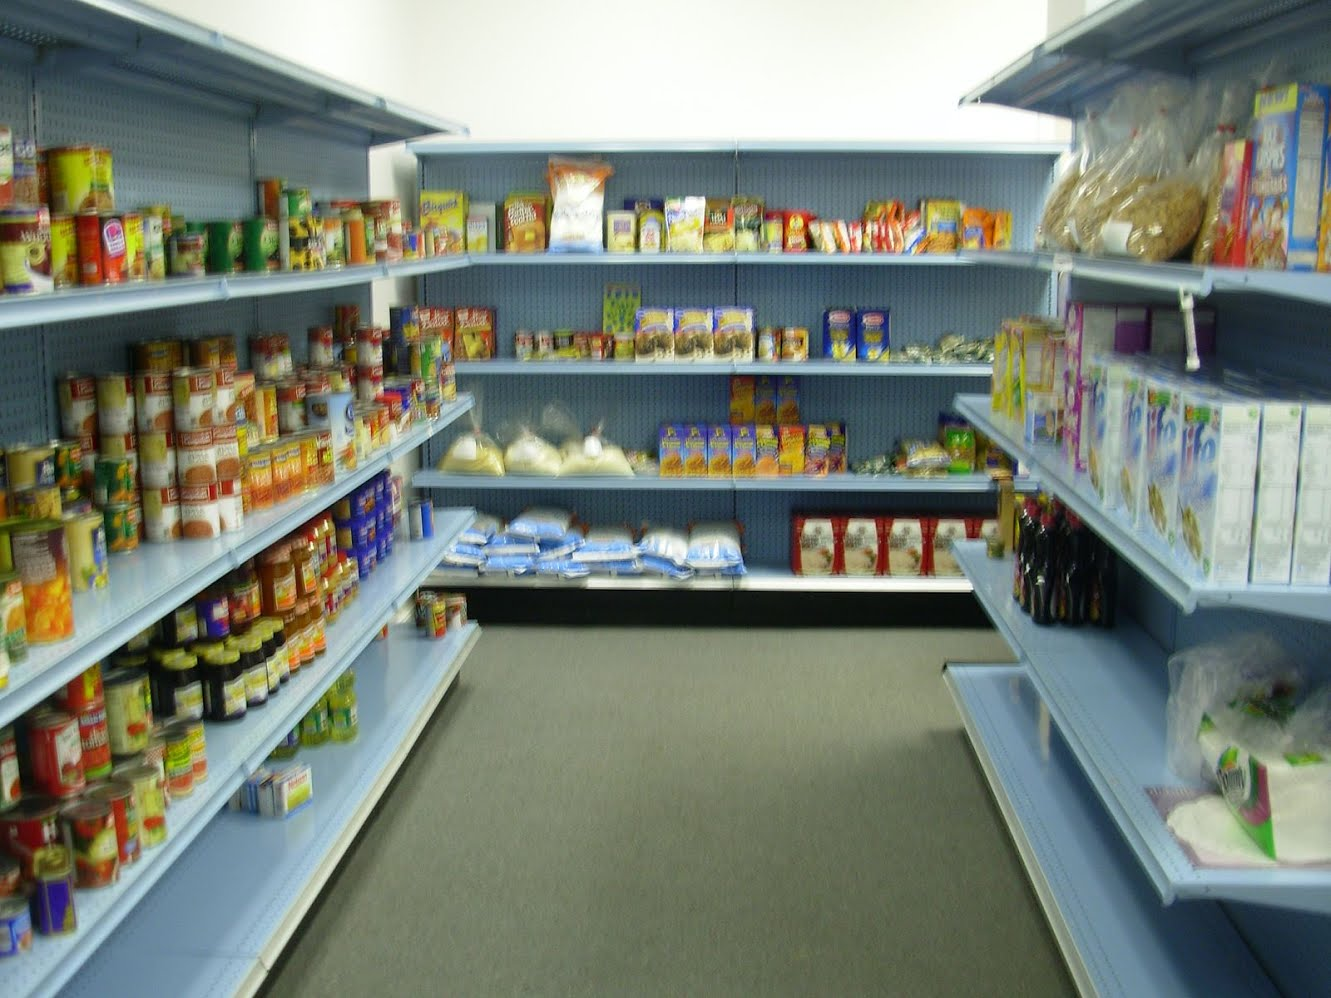 slider phoenix adjustable with pantrys custom scottsdale pantry shelving baskets cabinets arizona storage pantries az